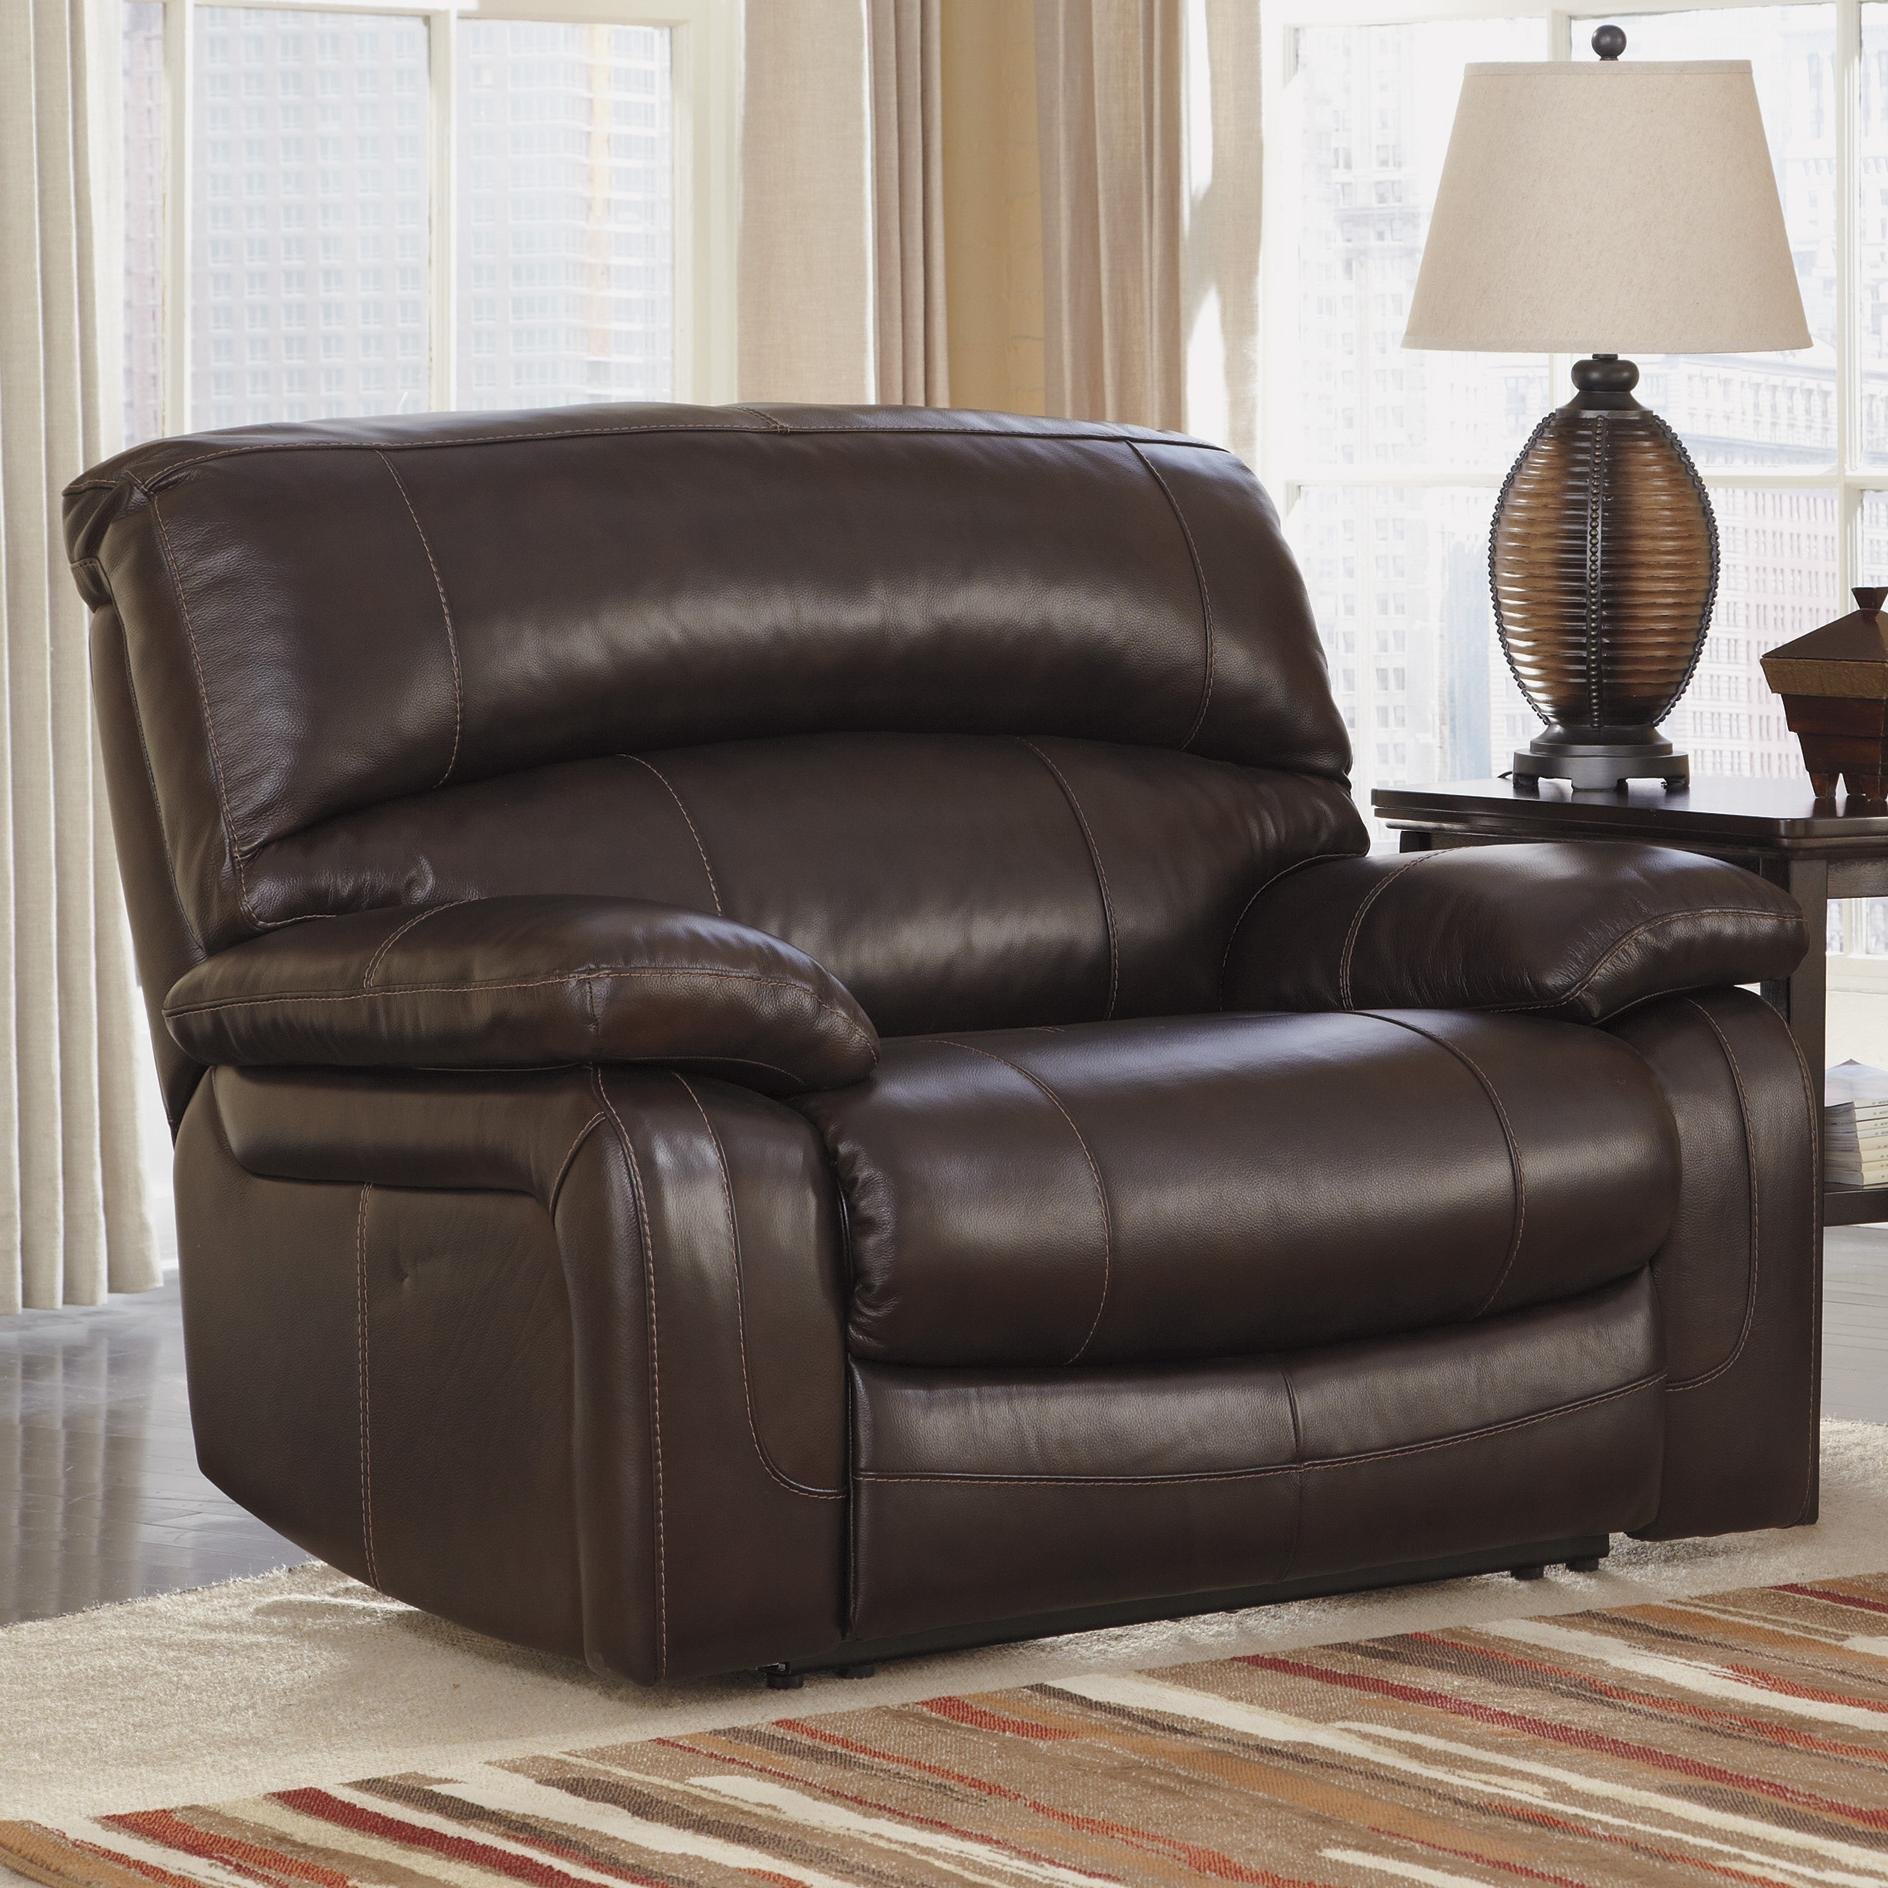 Signature Design by Ashley Damacio - Dark Brown Zero Wall Wide Seat Recliner - Item Number: U9820052